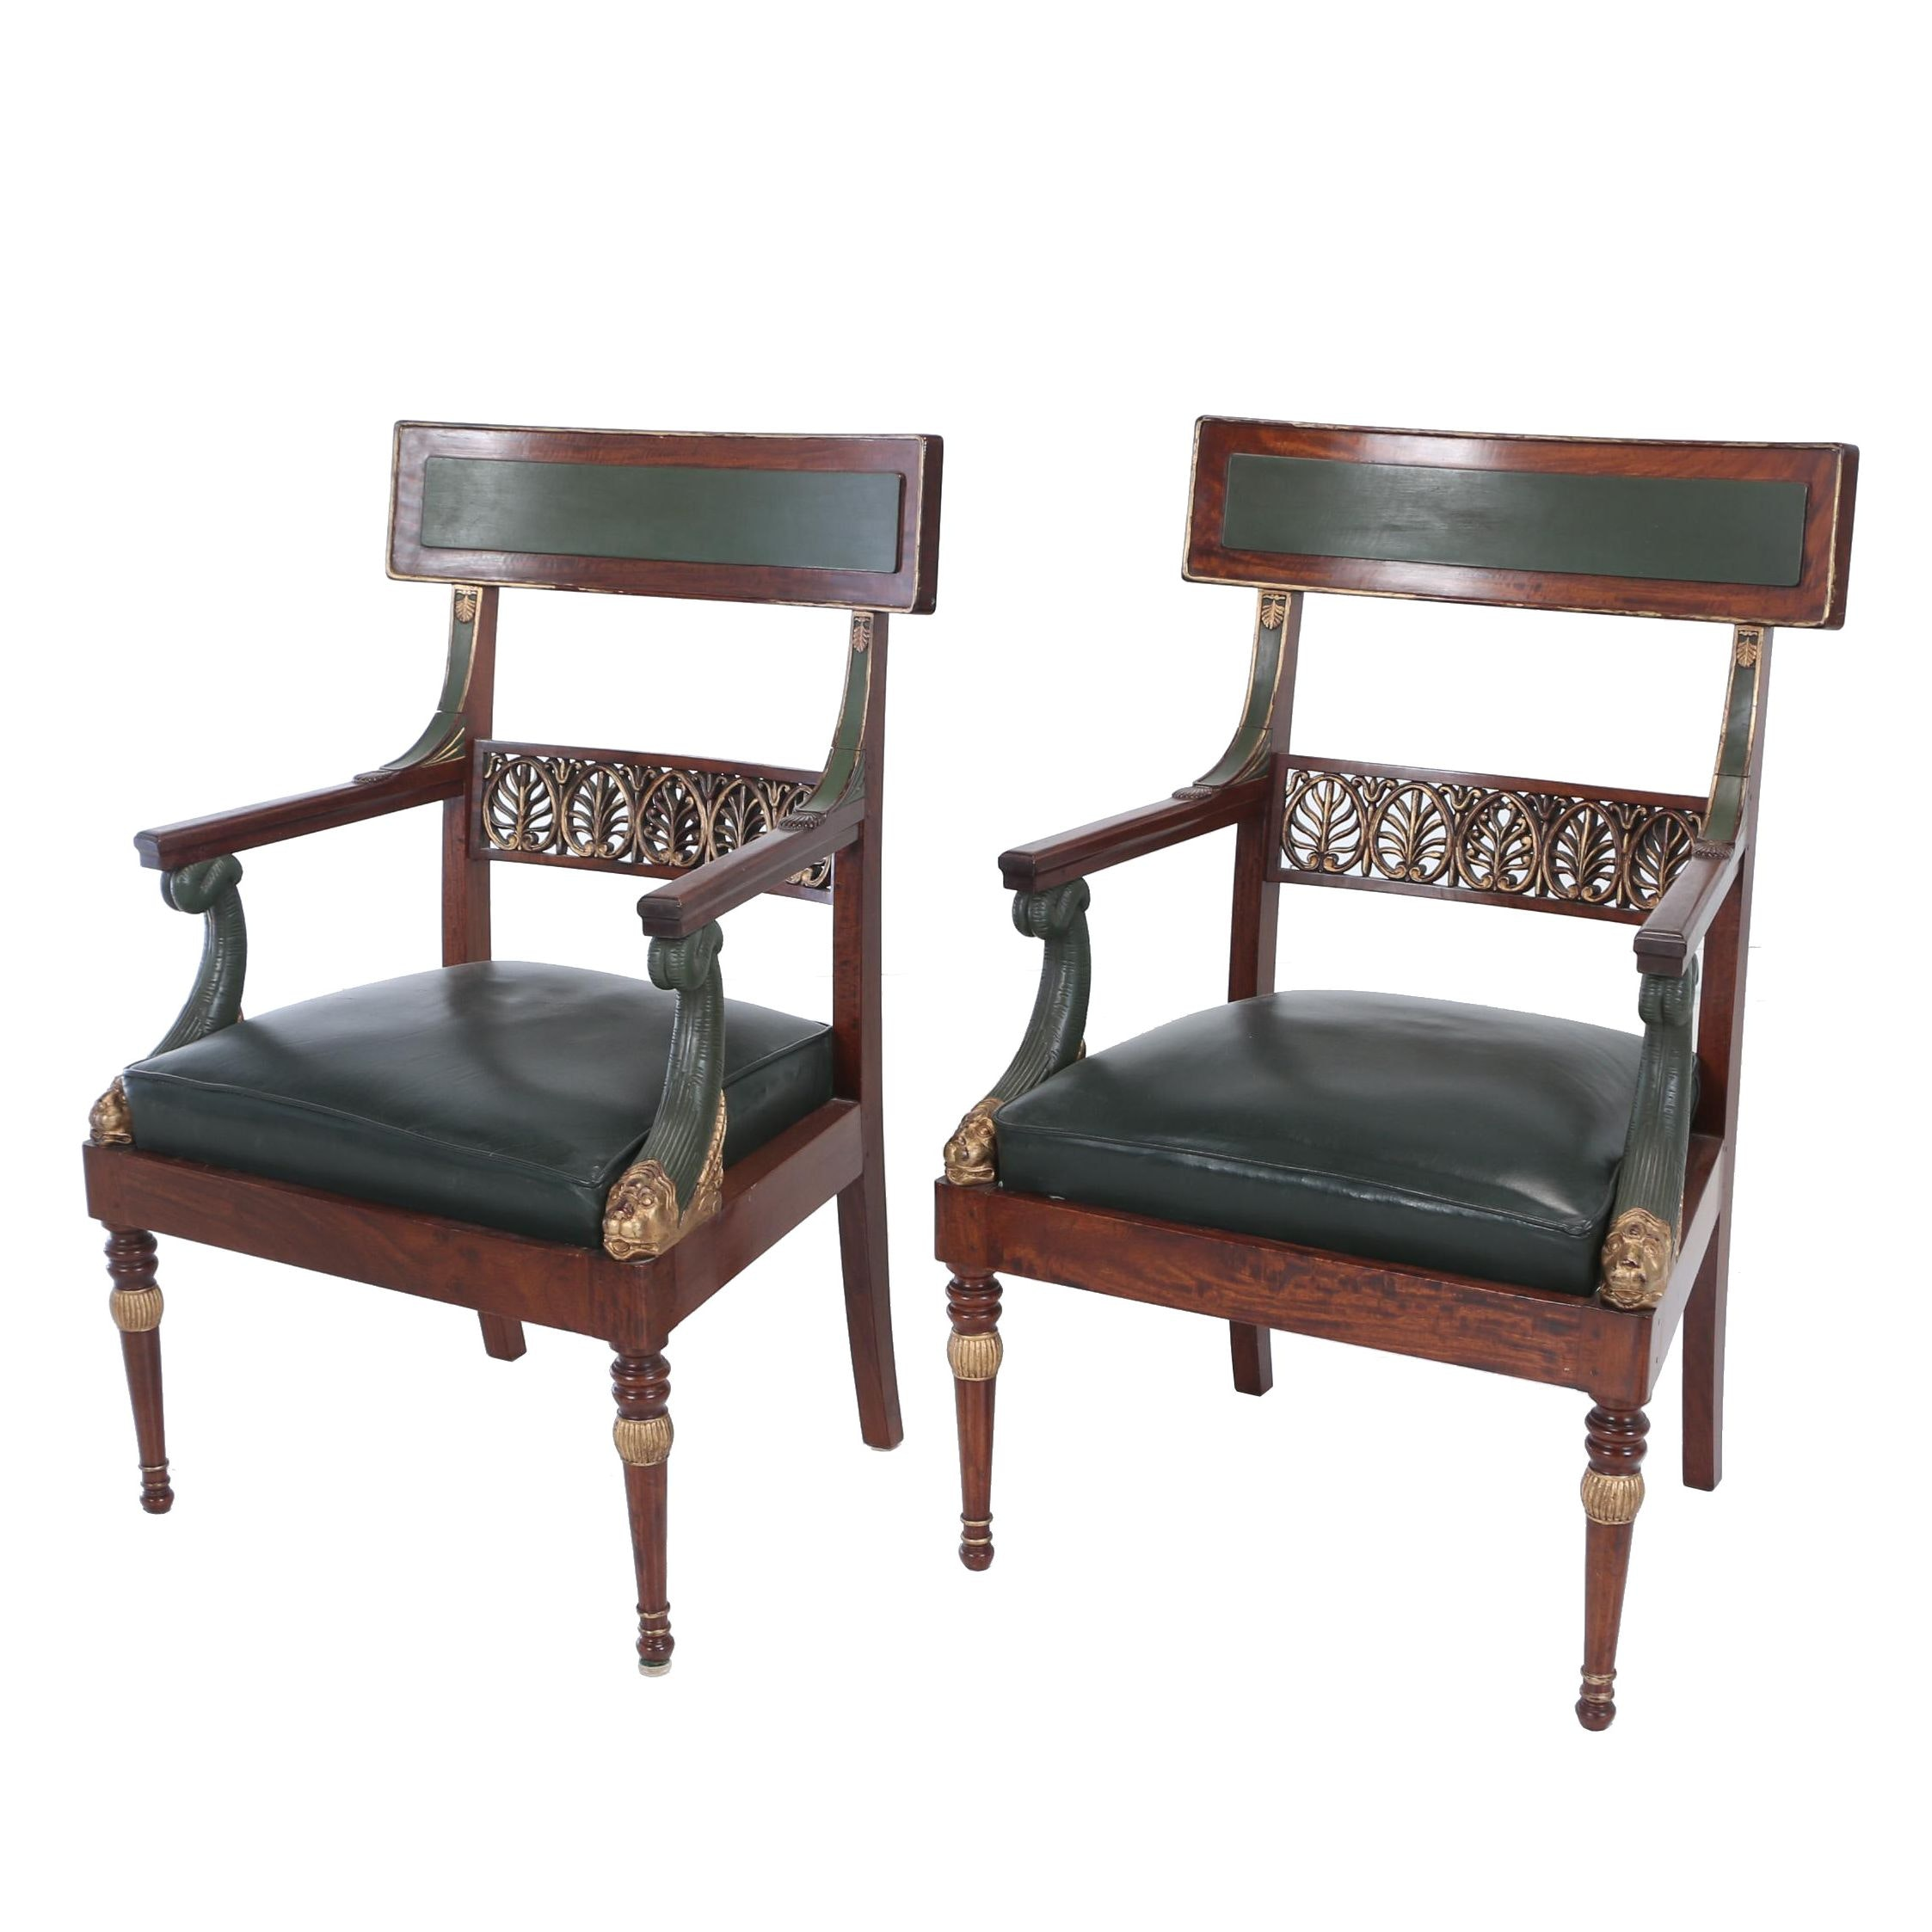 Pair of Contemporary Empire Style Mahogany, Parcel-Gilt, and Painted Armchairs